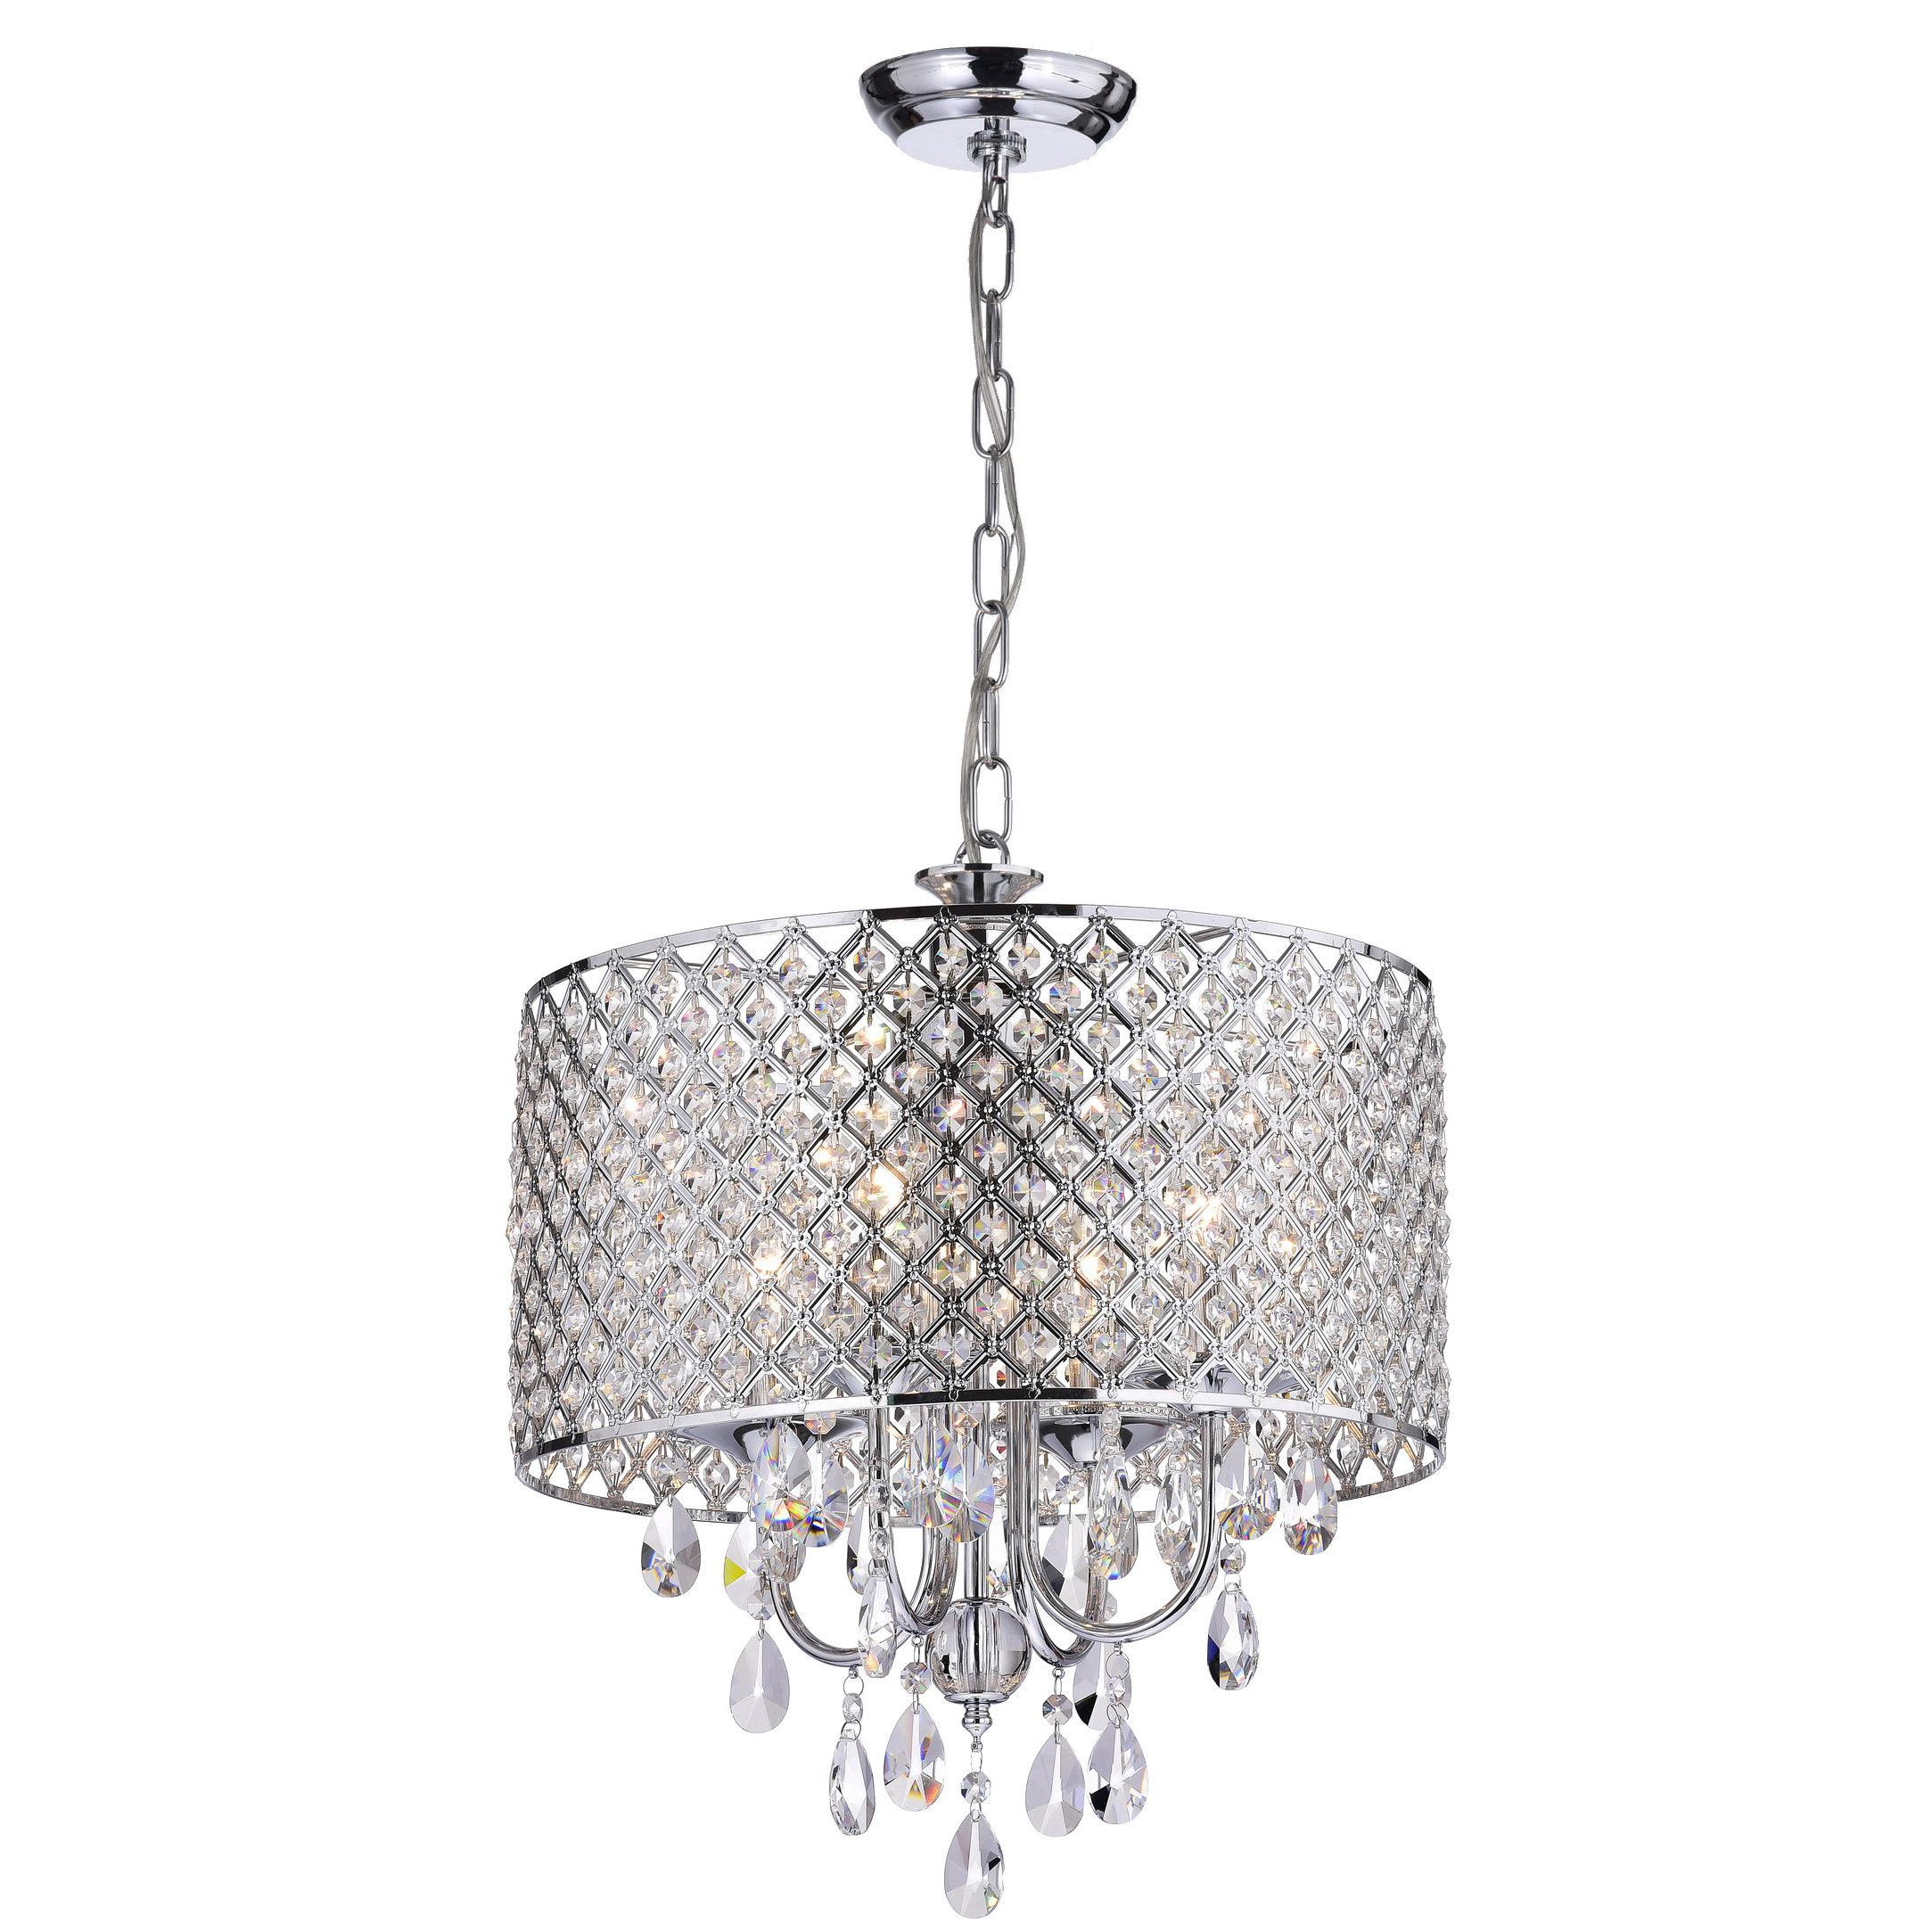 2019 Benedetto 5 Light Crystal Chandeliers With Regard To Edvivi Marya 4 Light Crystal Chandelier (View 9 of 25)